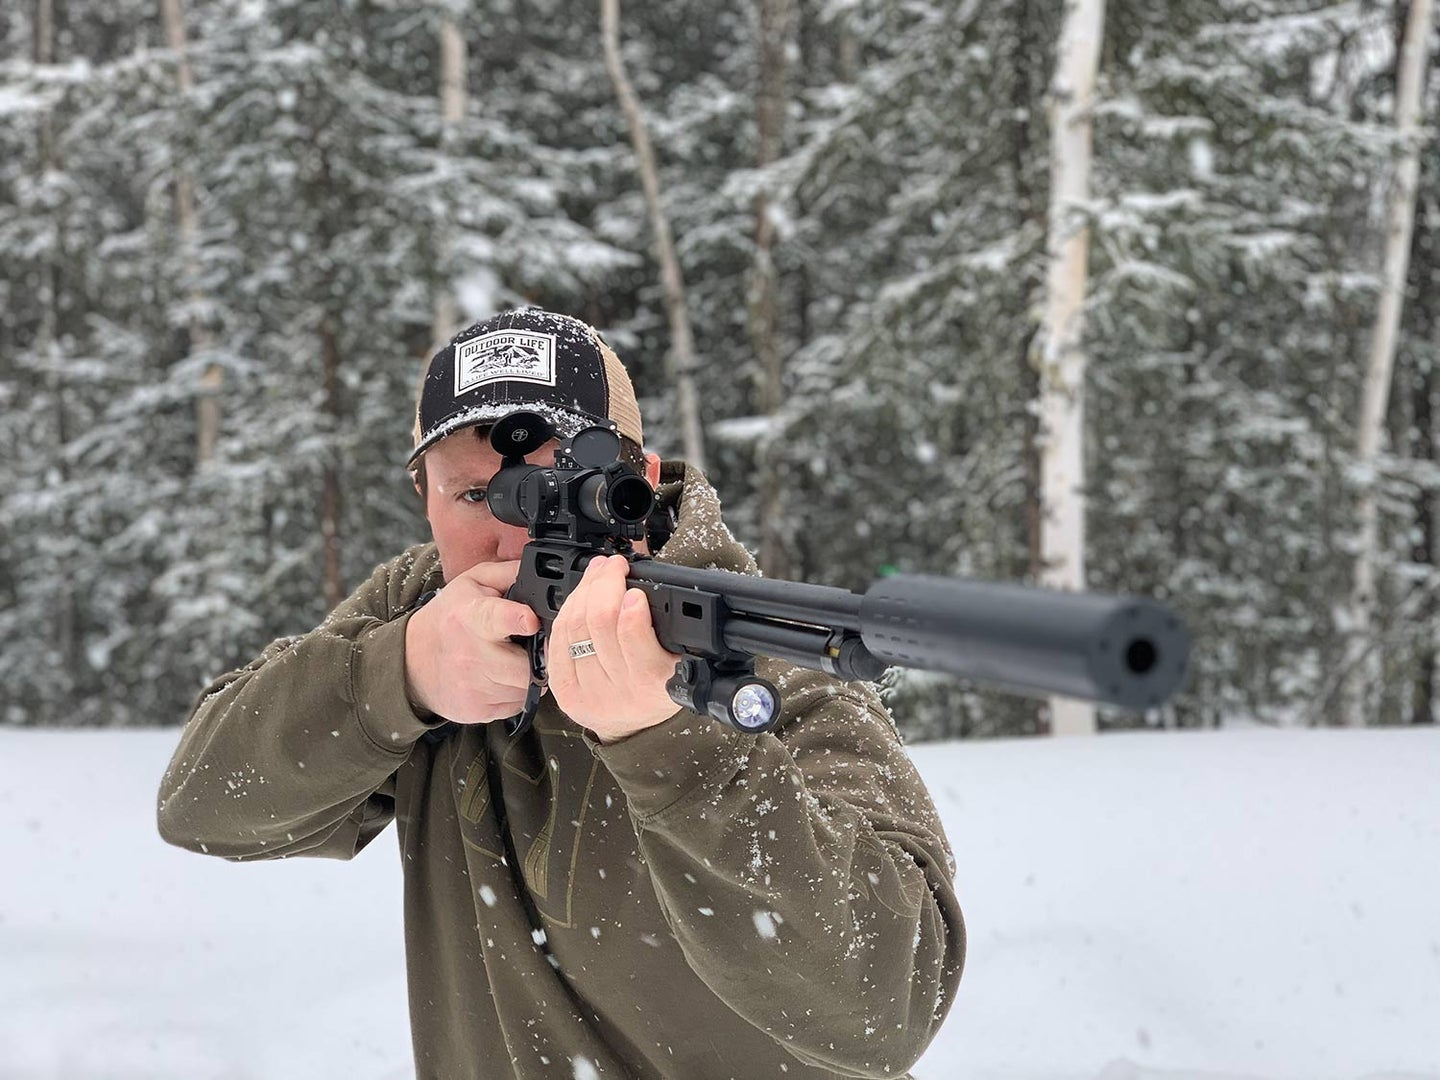 Man aiming a rifle in the snow.